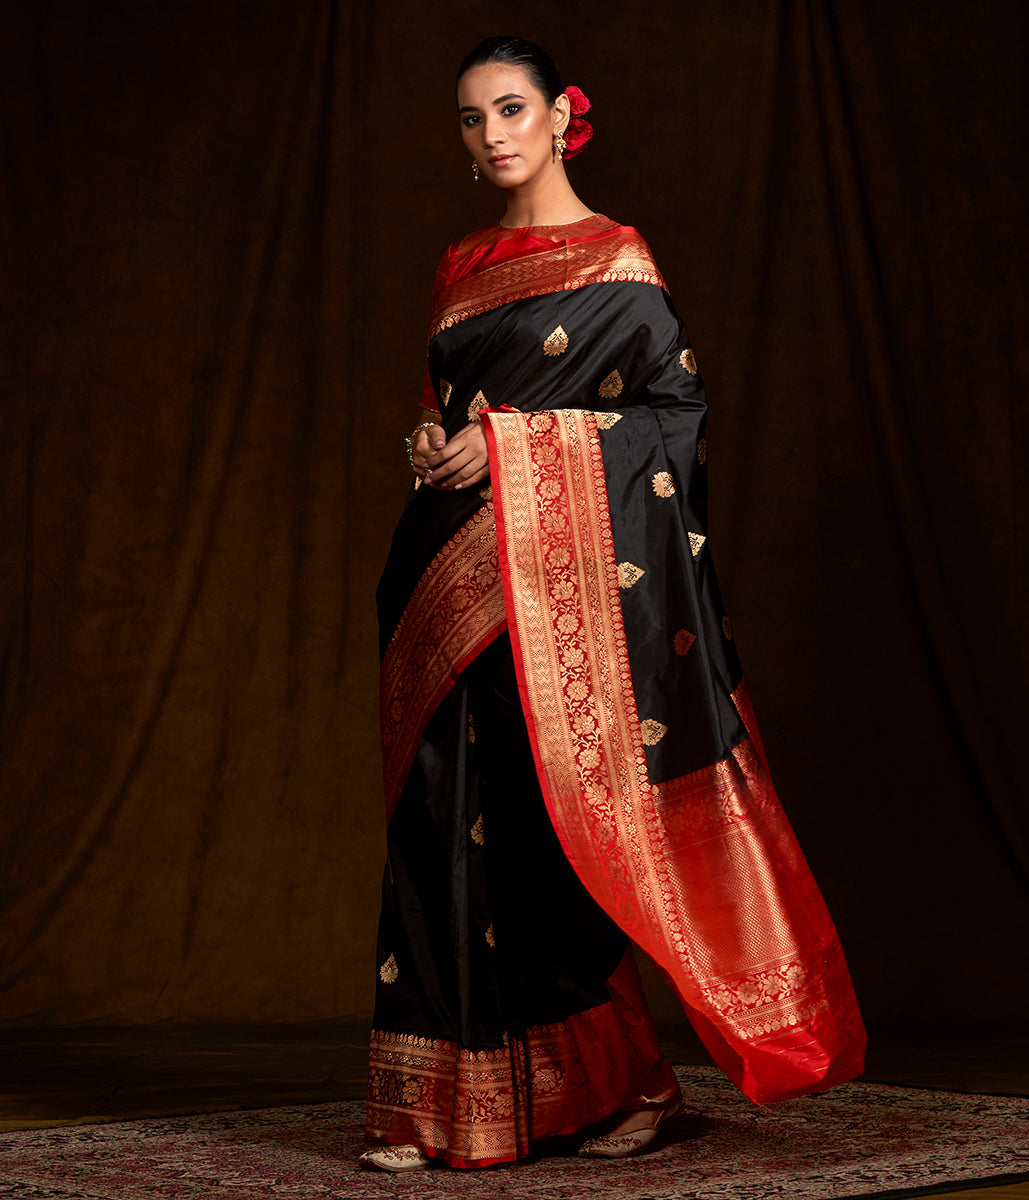 Black Katan Silk Banarasi with a Contrast Border